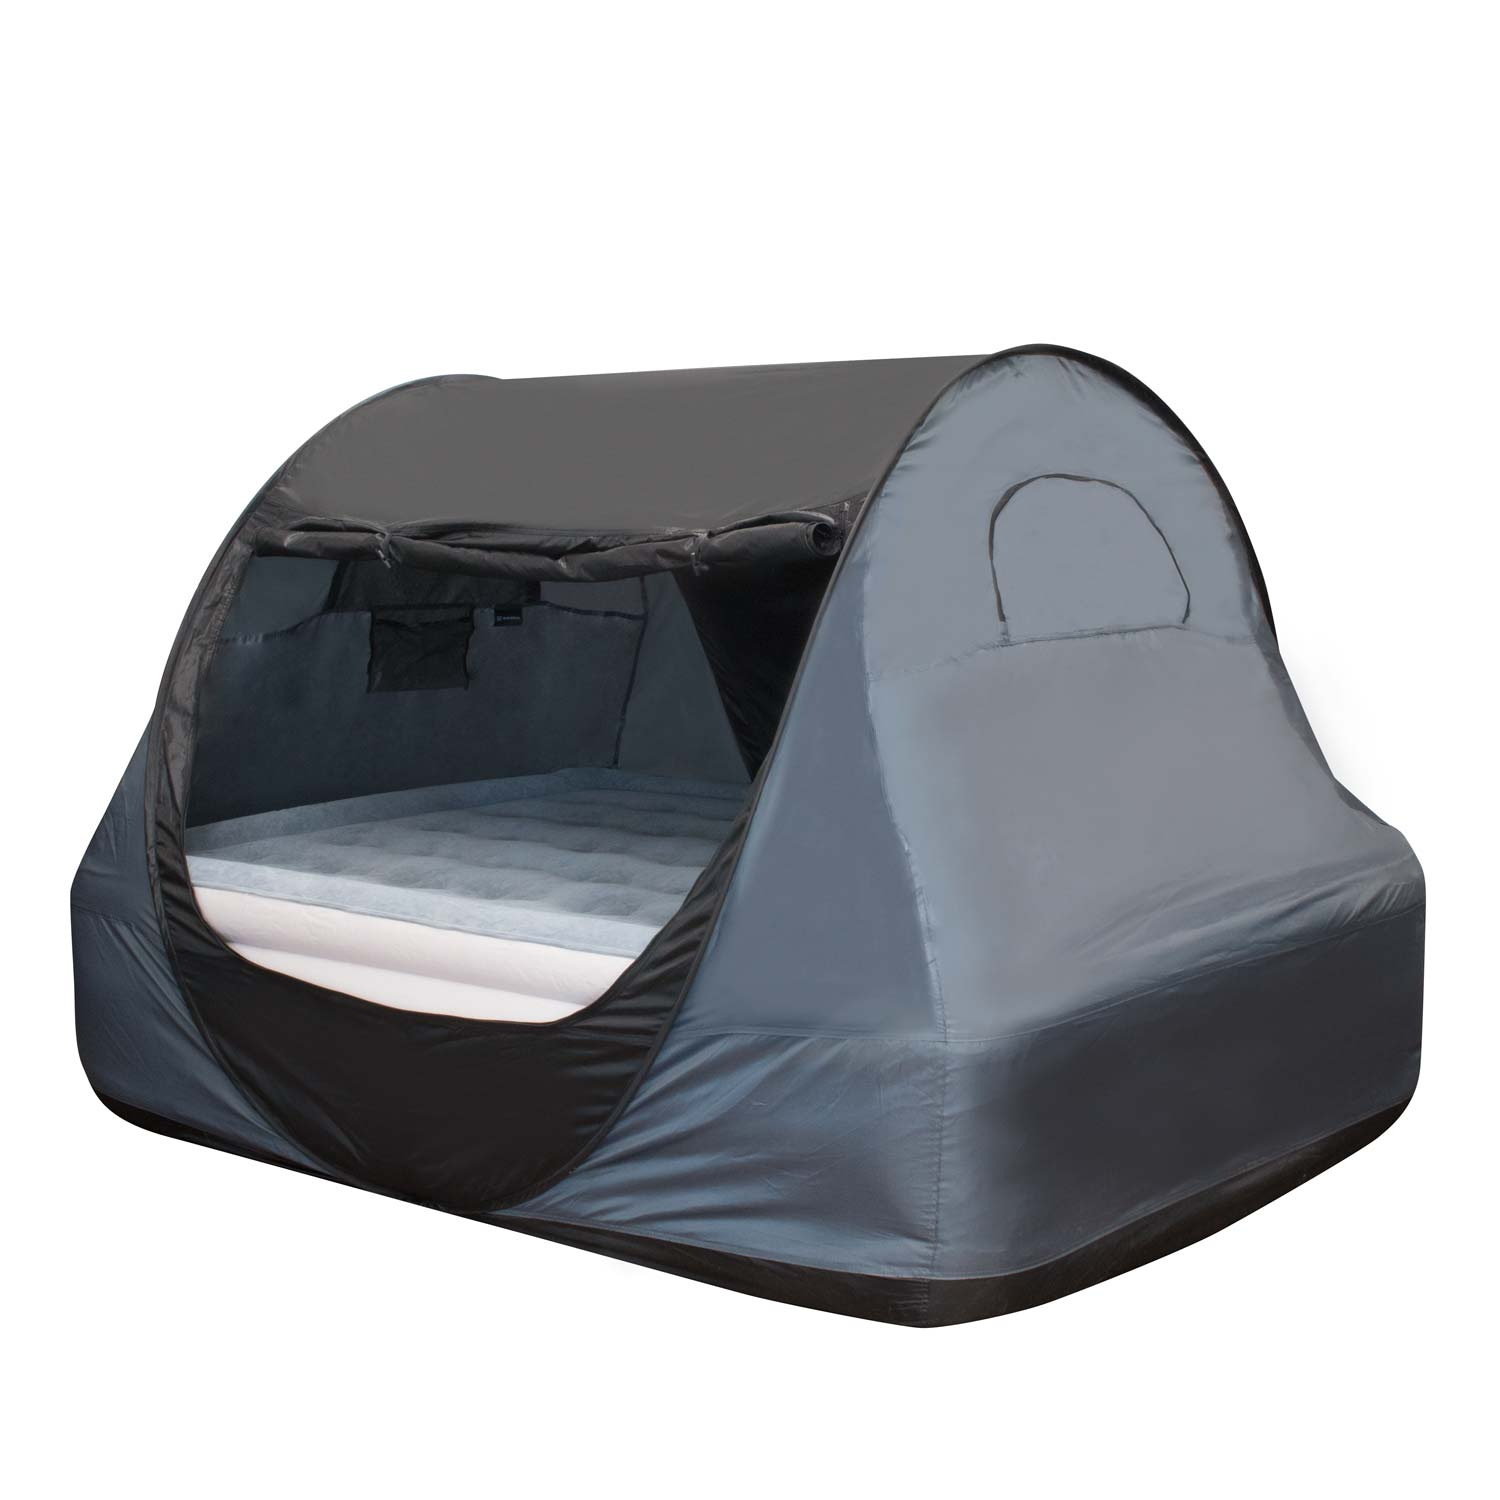 Privacy Bed Tent Fits Full and Twin Size Mattress Sizes  sc 1 st  Winterial.com & Privacy Bed Tent Fits Full and Twin Size Mattress Sizes ...